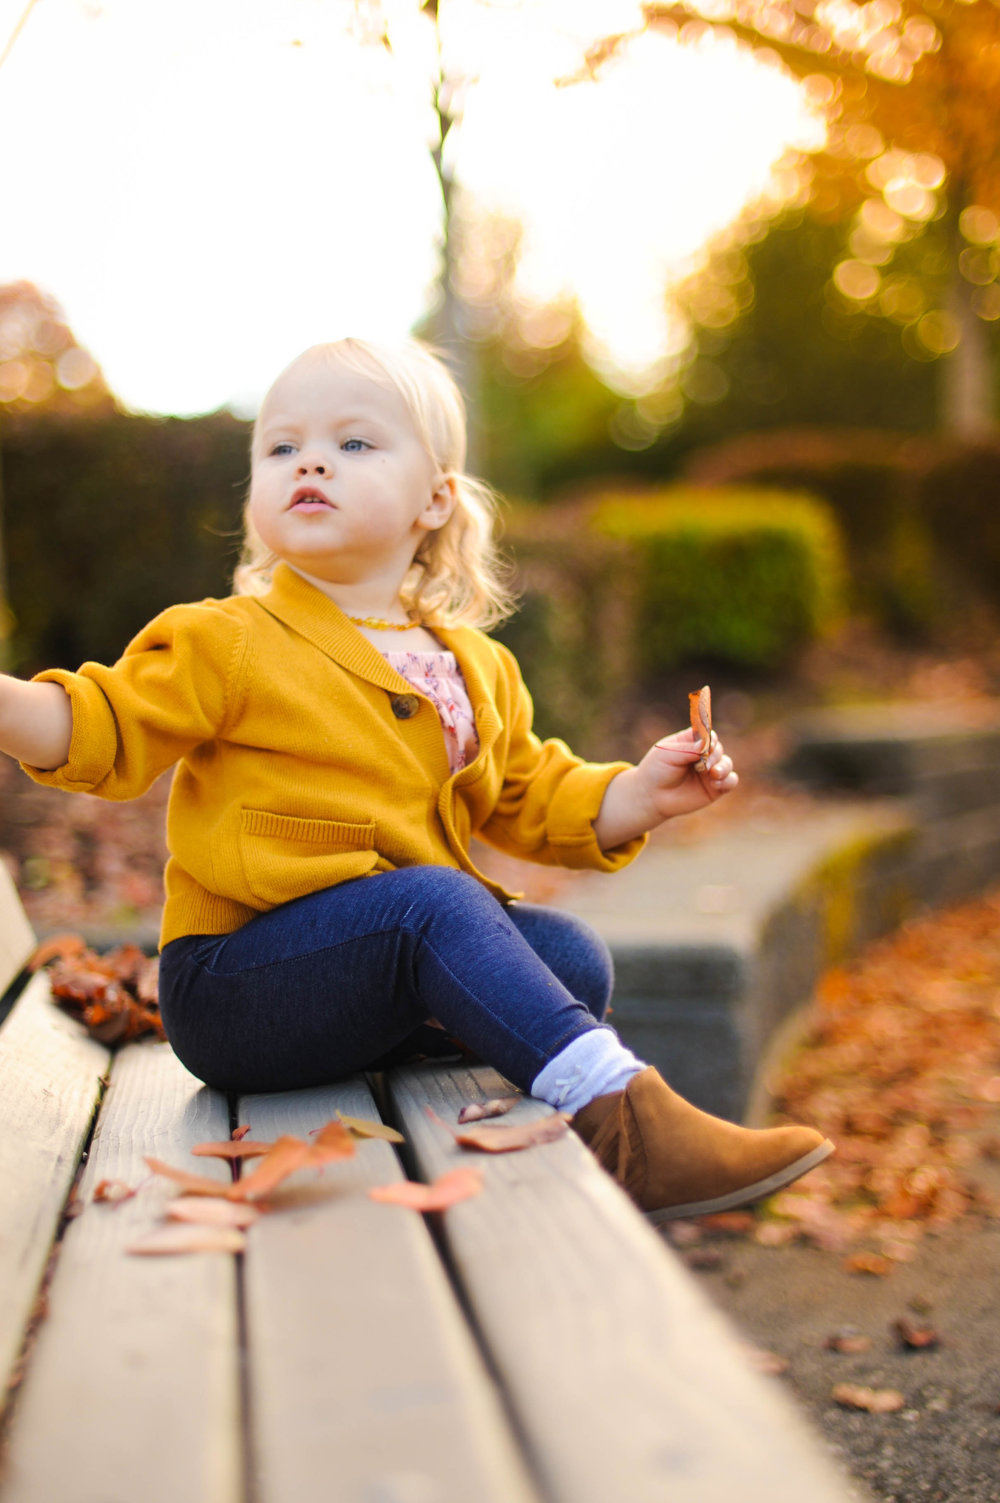 She was clearly worried that another kid was swinging on HER swing... ha ha